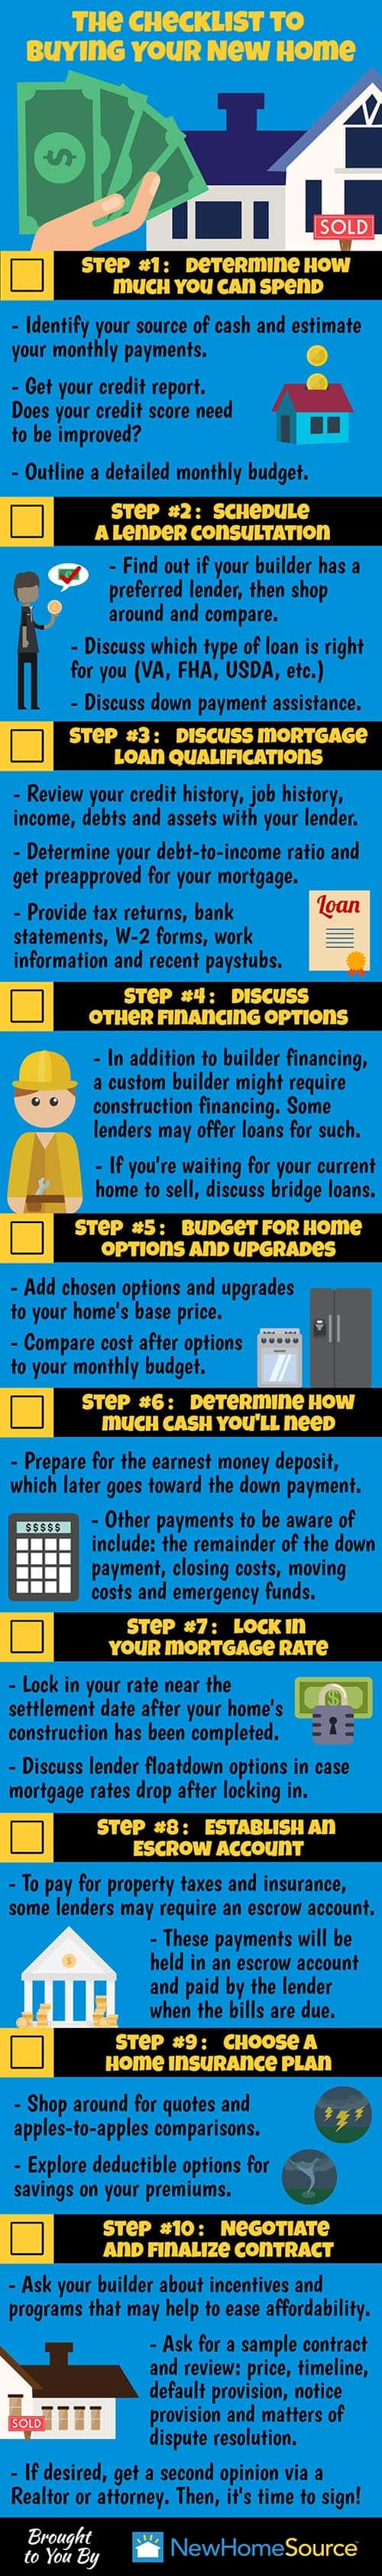 Infographic of a Homebuying Checklist for the First-Time Homebuyer